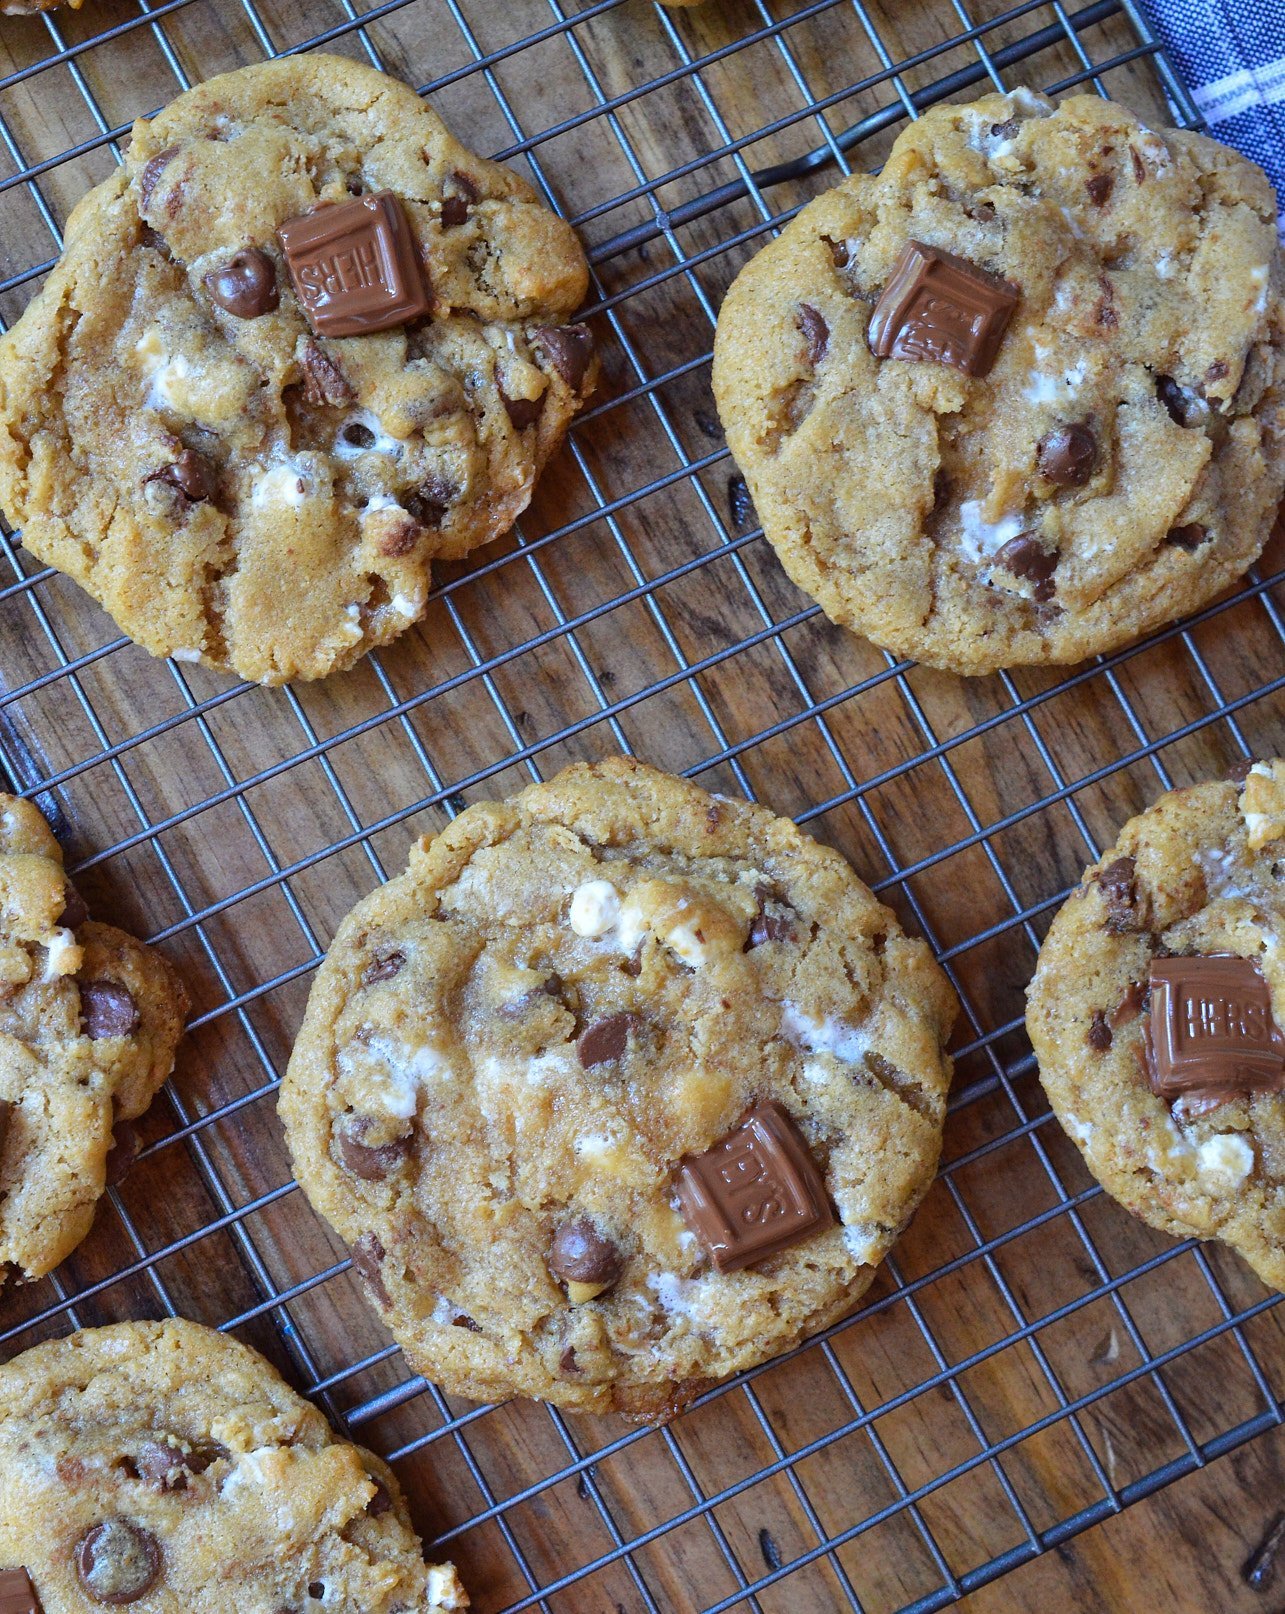 This fun twist on your favorite cookie is filled with S'mores goodness.S'mores Chewy Chocolate Chip Cookies make a great summertime dessert that can be enjoyed inside or outside! Marshmallows, chocolate and graham crackers make this super chewy cookie recipe extra special.